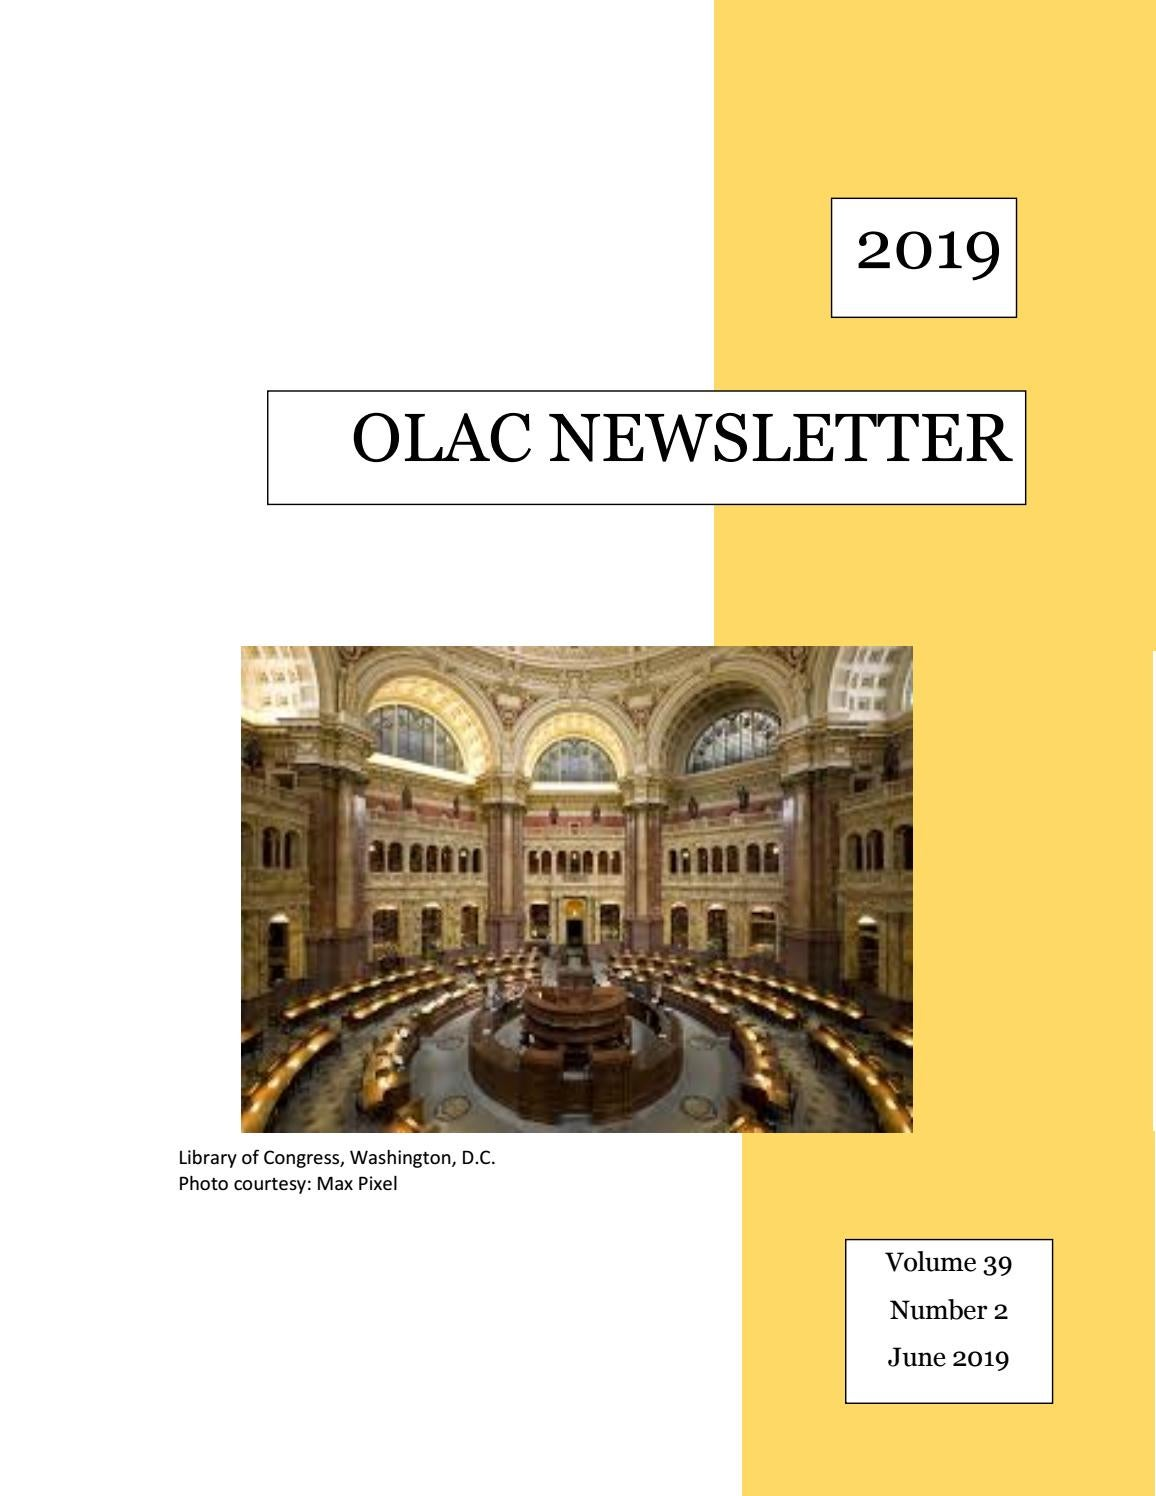 OLAC Newsletter Vol  39 No  2, June 2019 by OLAC Newsletter